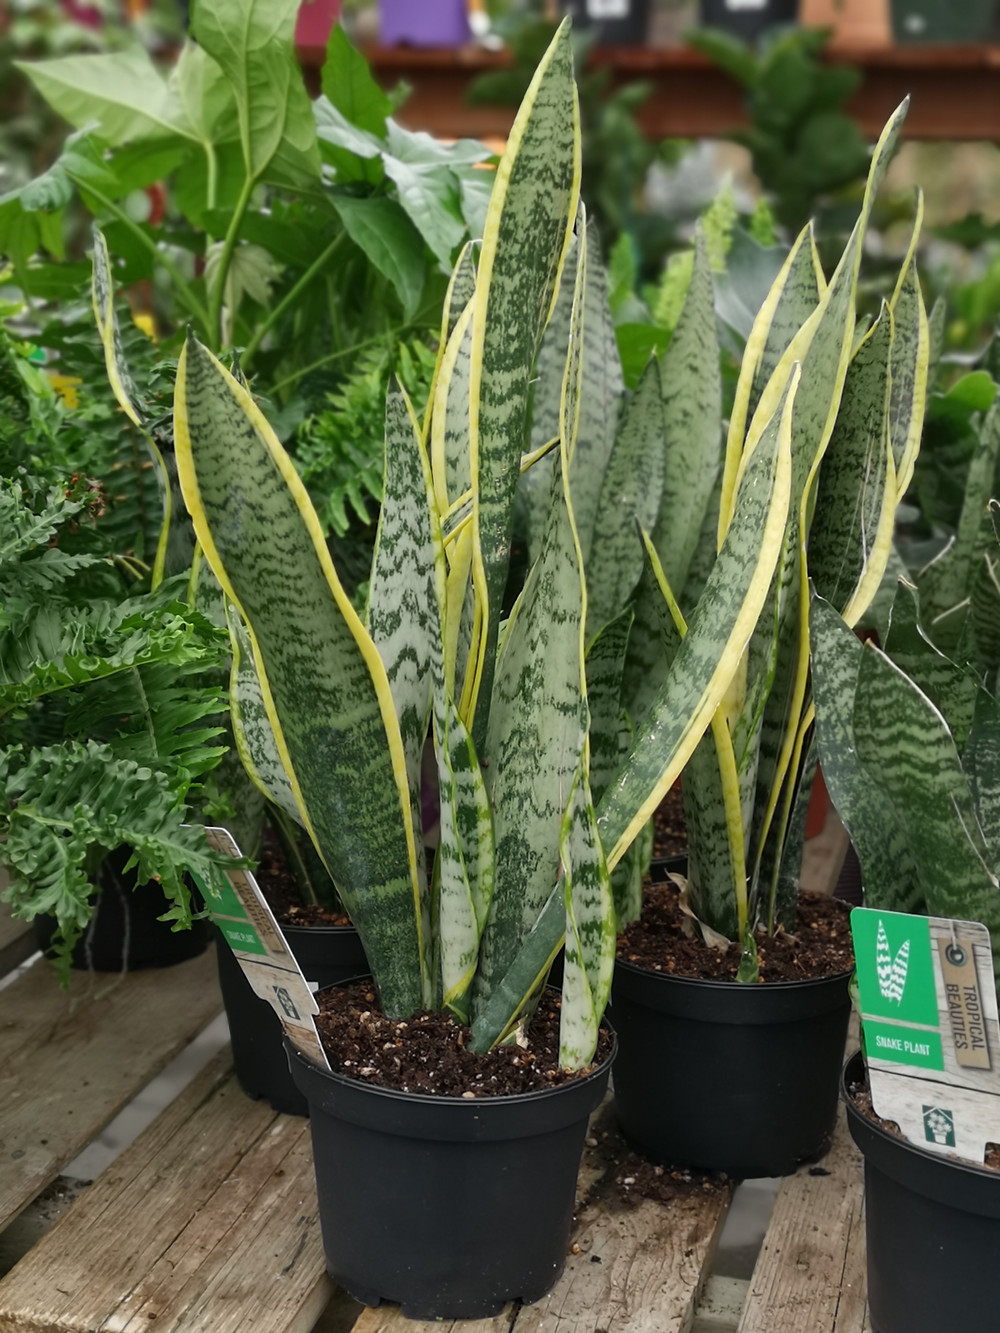 Sansevieria trifasciata 'Laurentii' - green and yellow houseplant